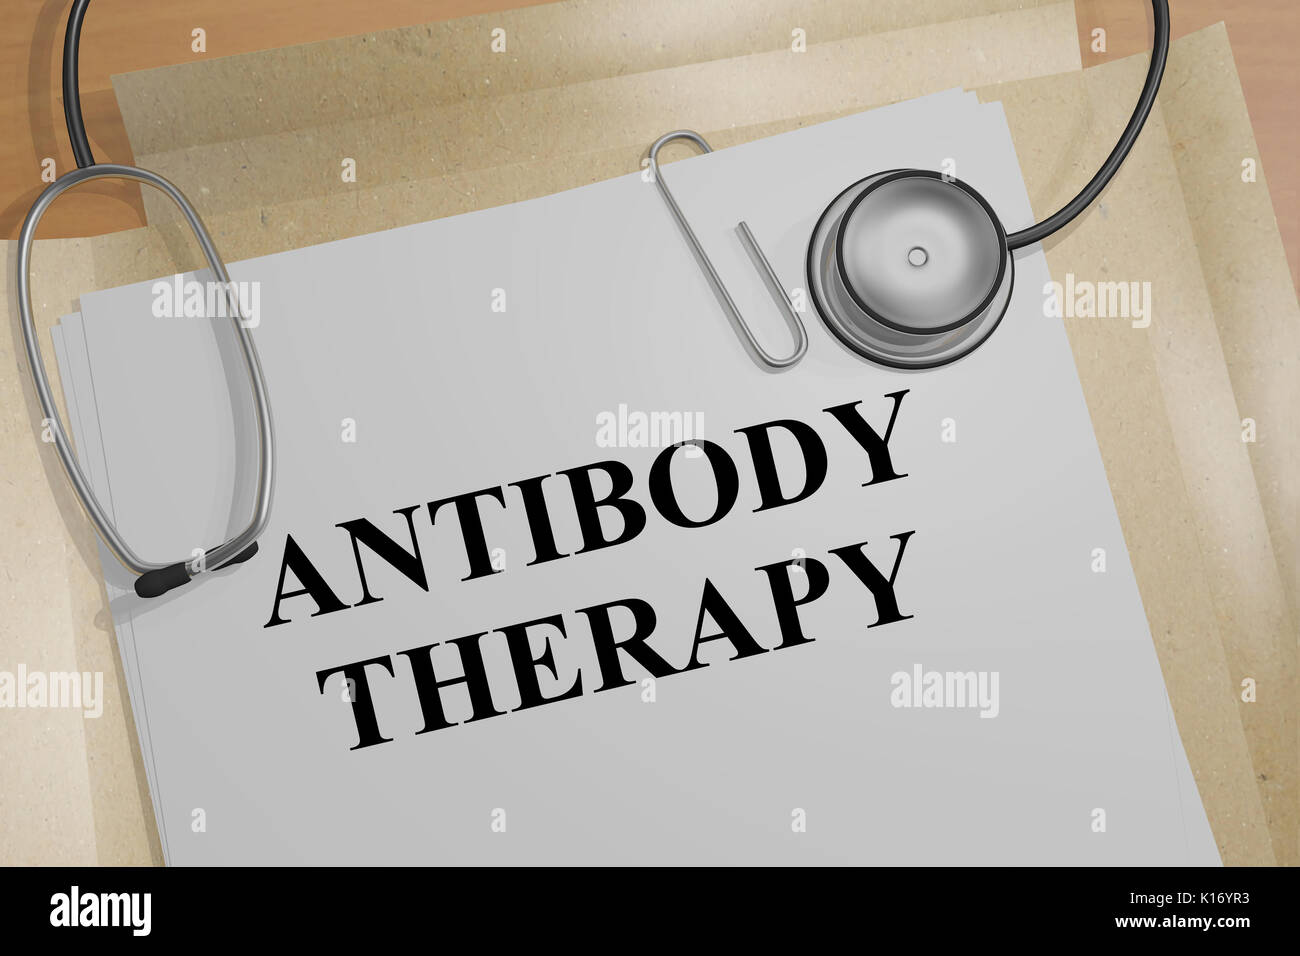 3D illustration of 'ANTIBODY THERAPY' title on a document - Stock Image